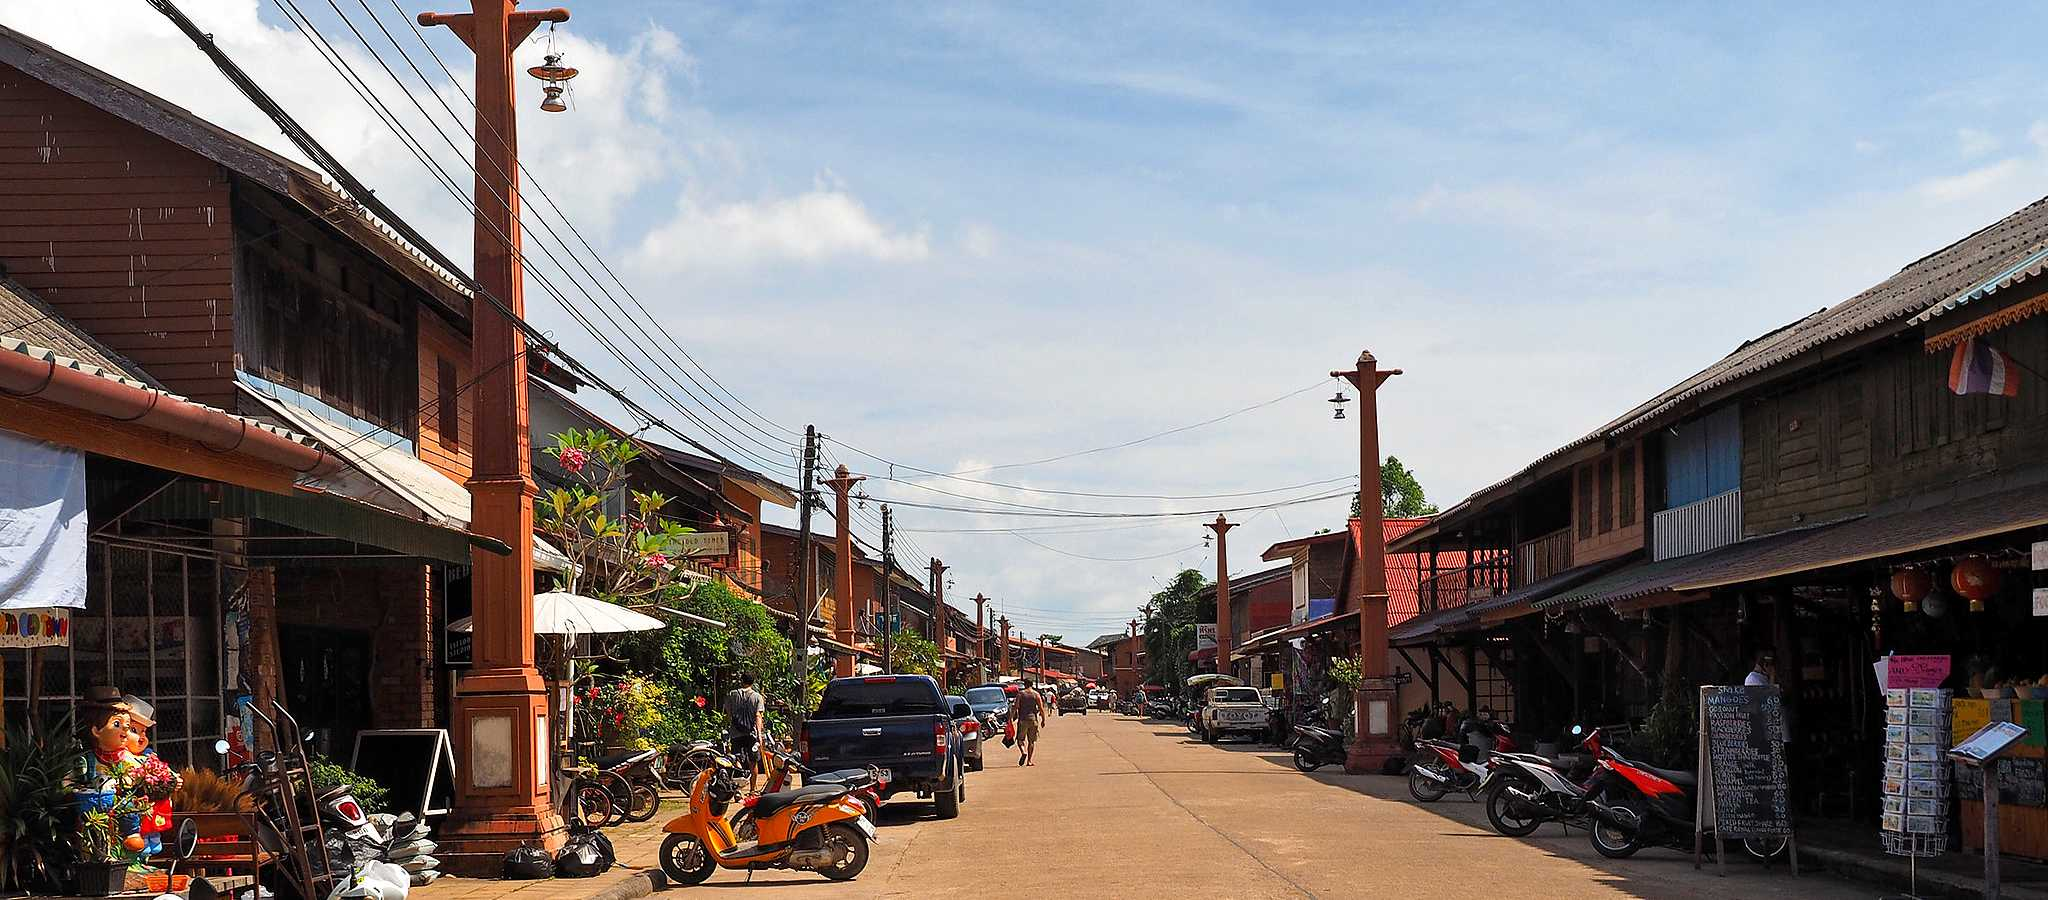 Koh Lanta Old Town, shopping street with restaurants and shops